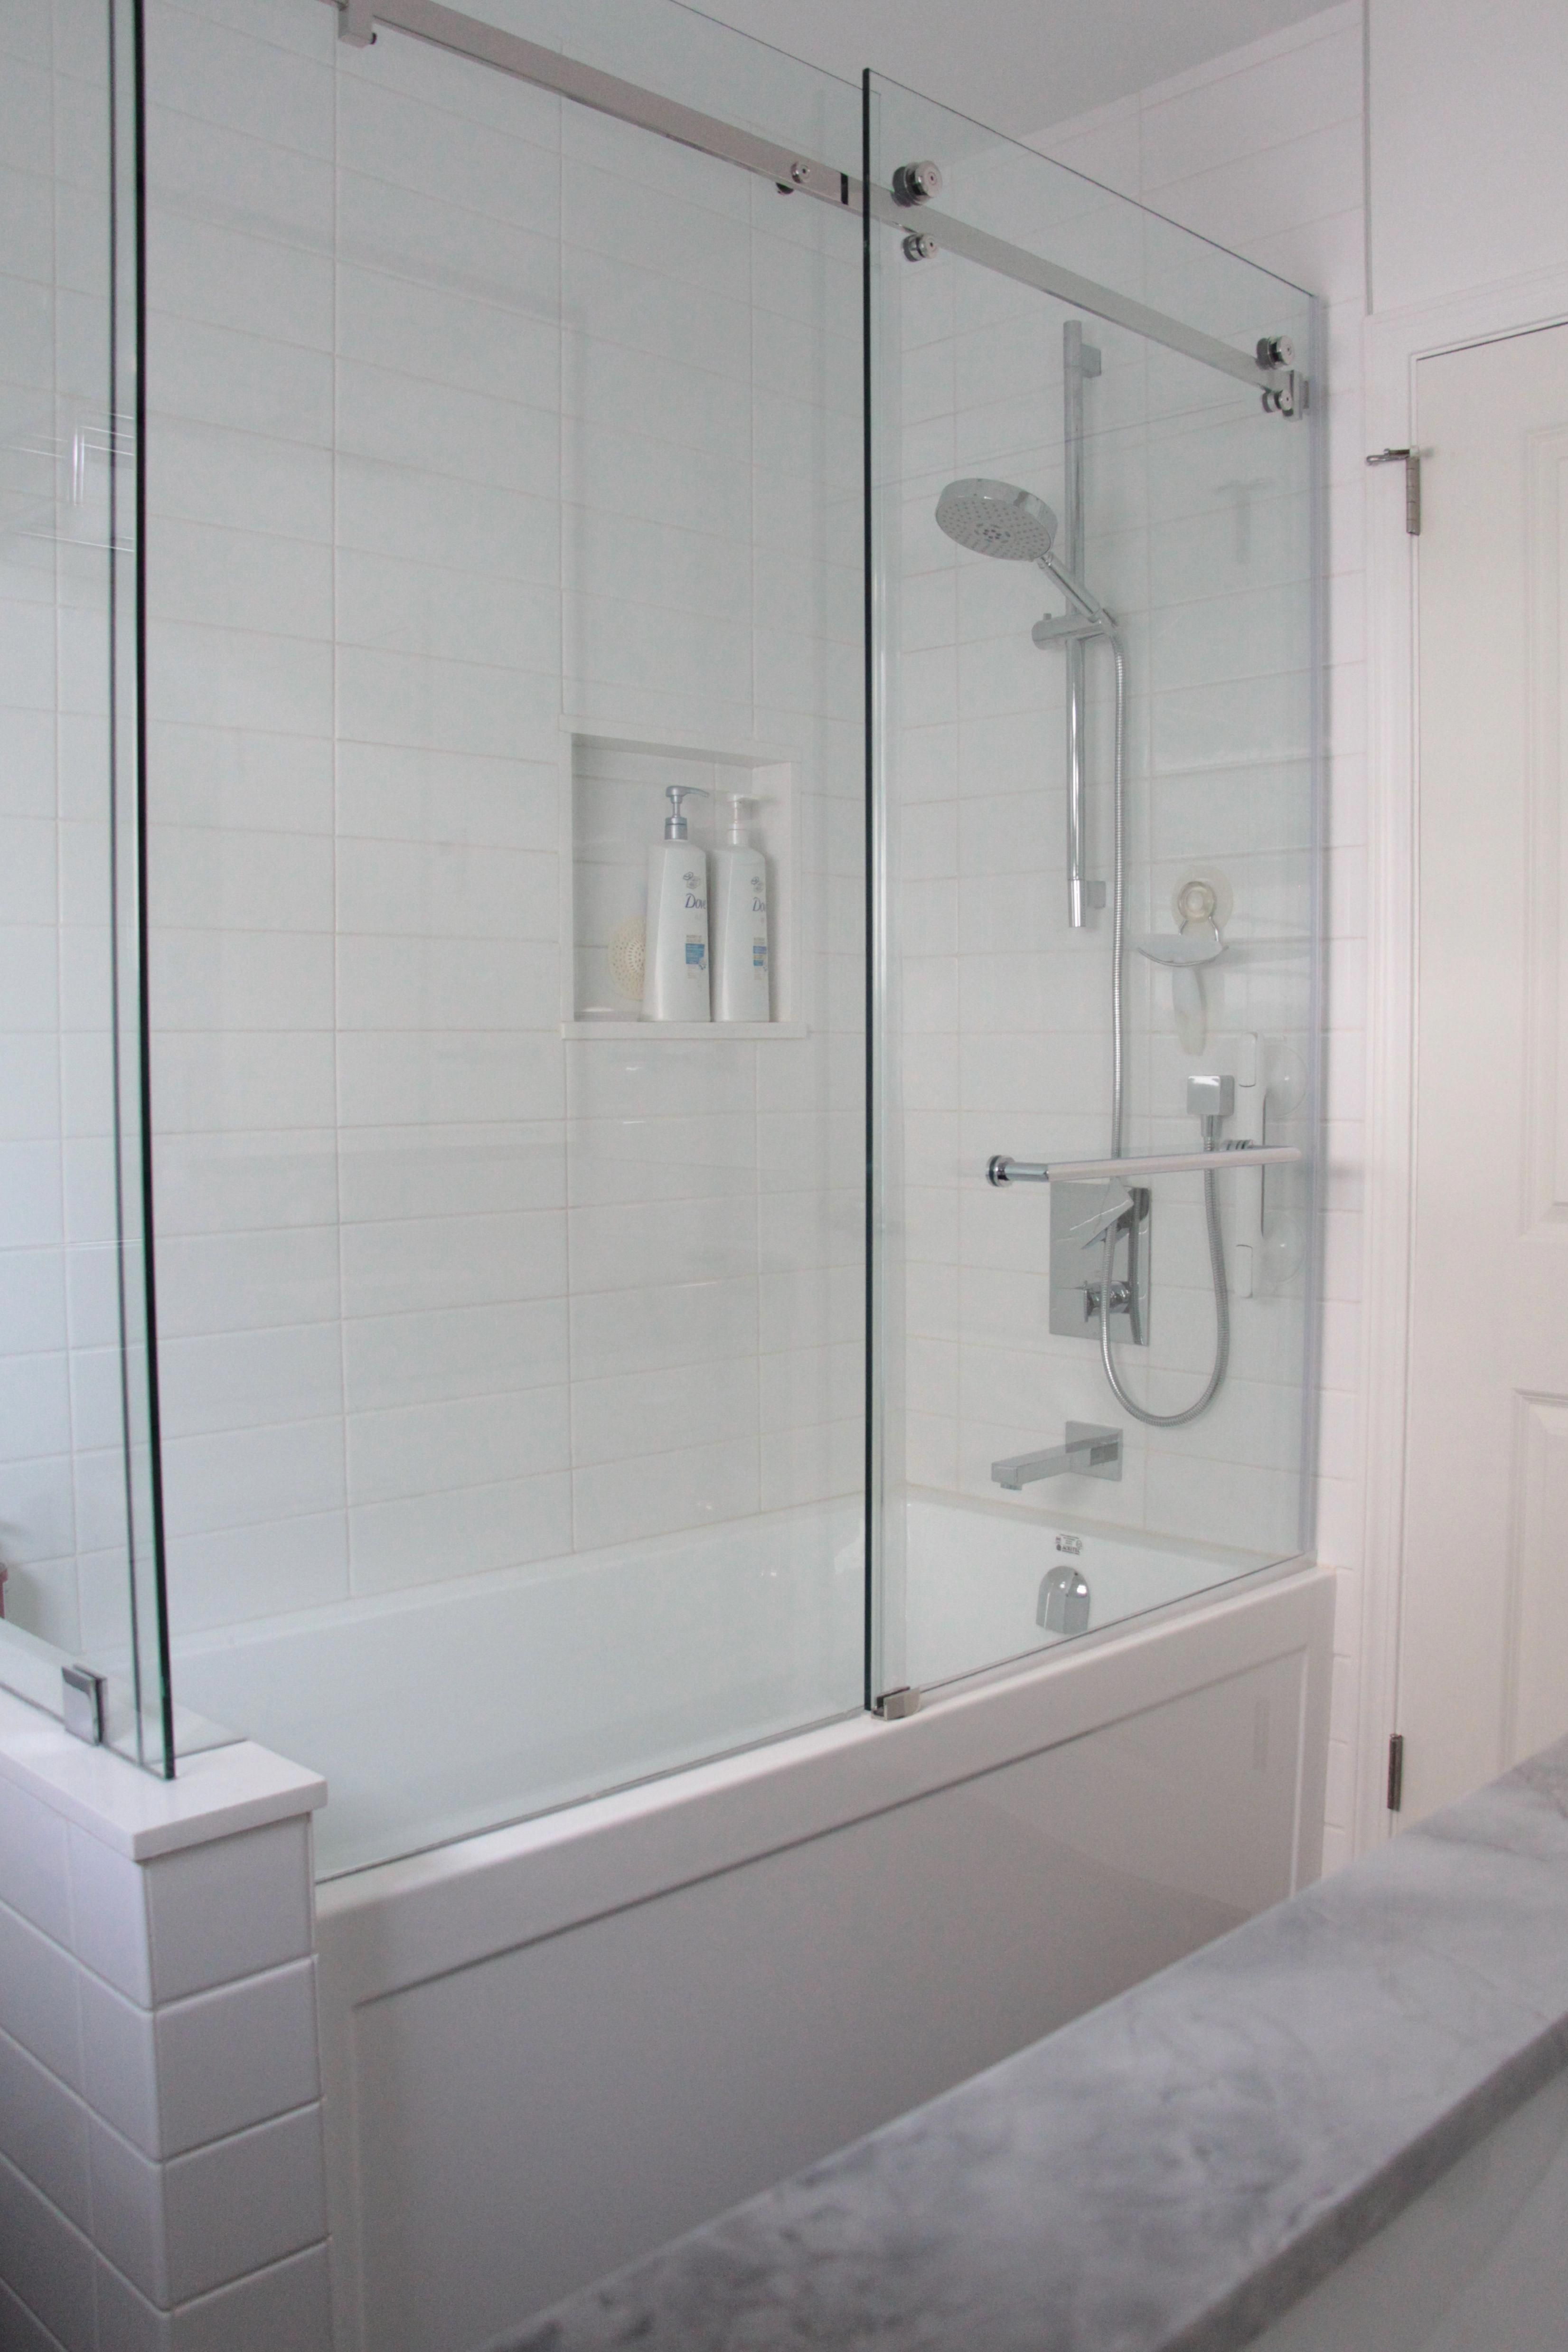 Choosing A New Shower Stall With Images Bathtub Shower Doors